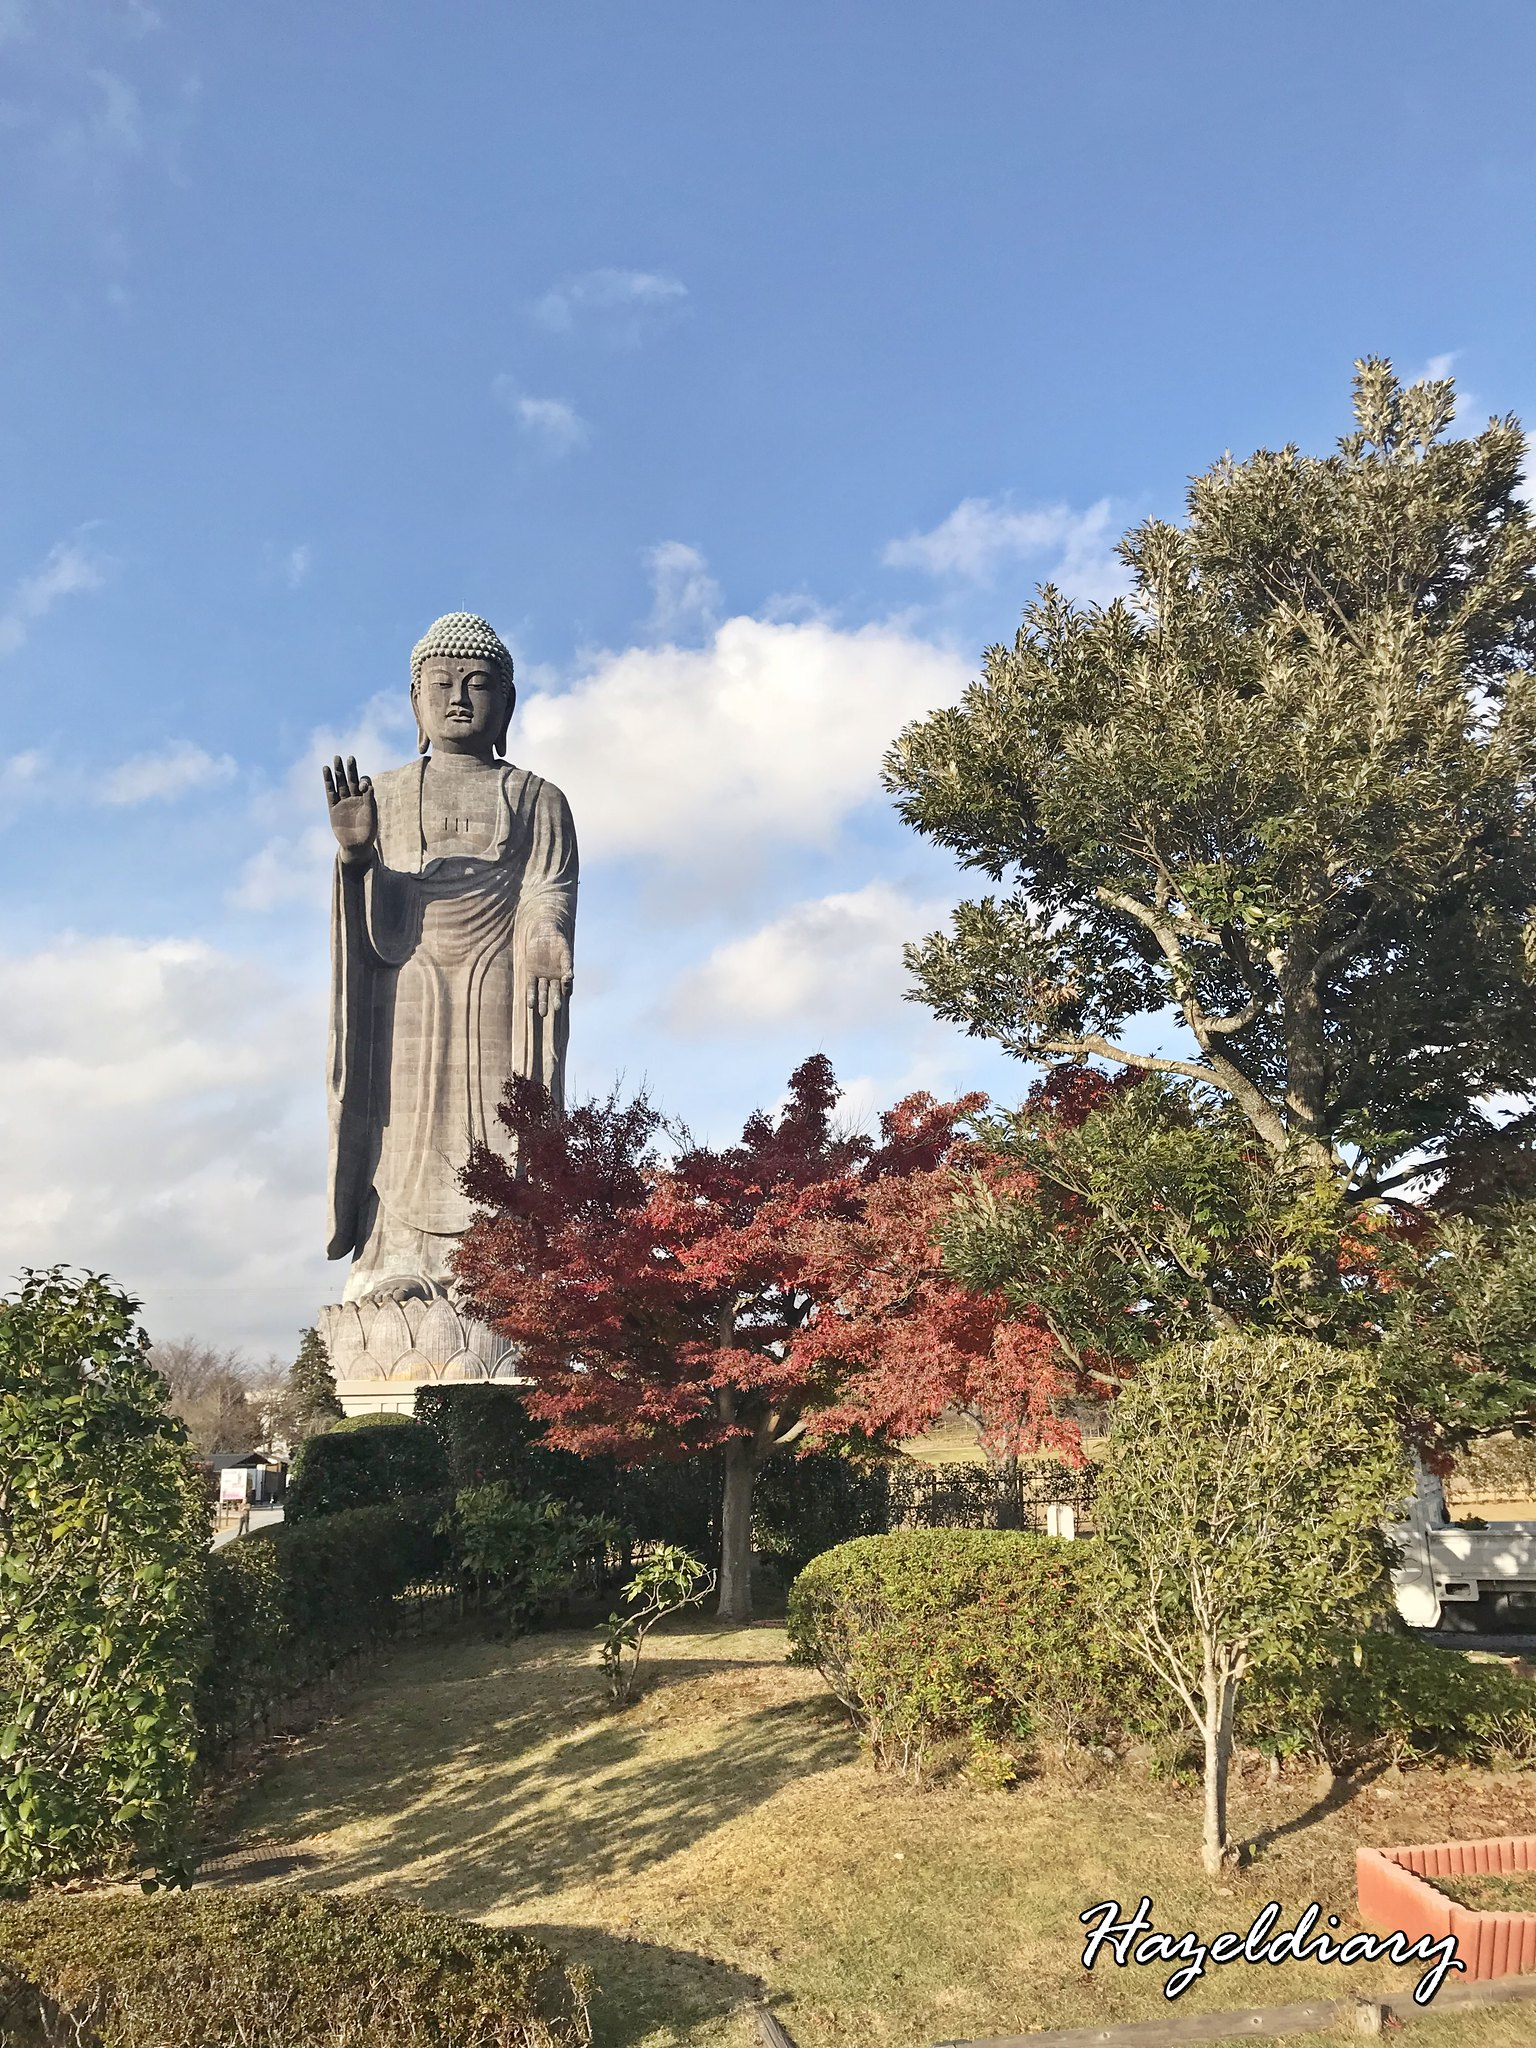 [JAPAN TRAVELS] 1 Day Trip to Ushiku Daibutsu (牛久大仏)  from Tokyo- Once Tallest Buddha Figure in Guinness Book of Records